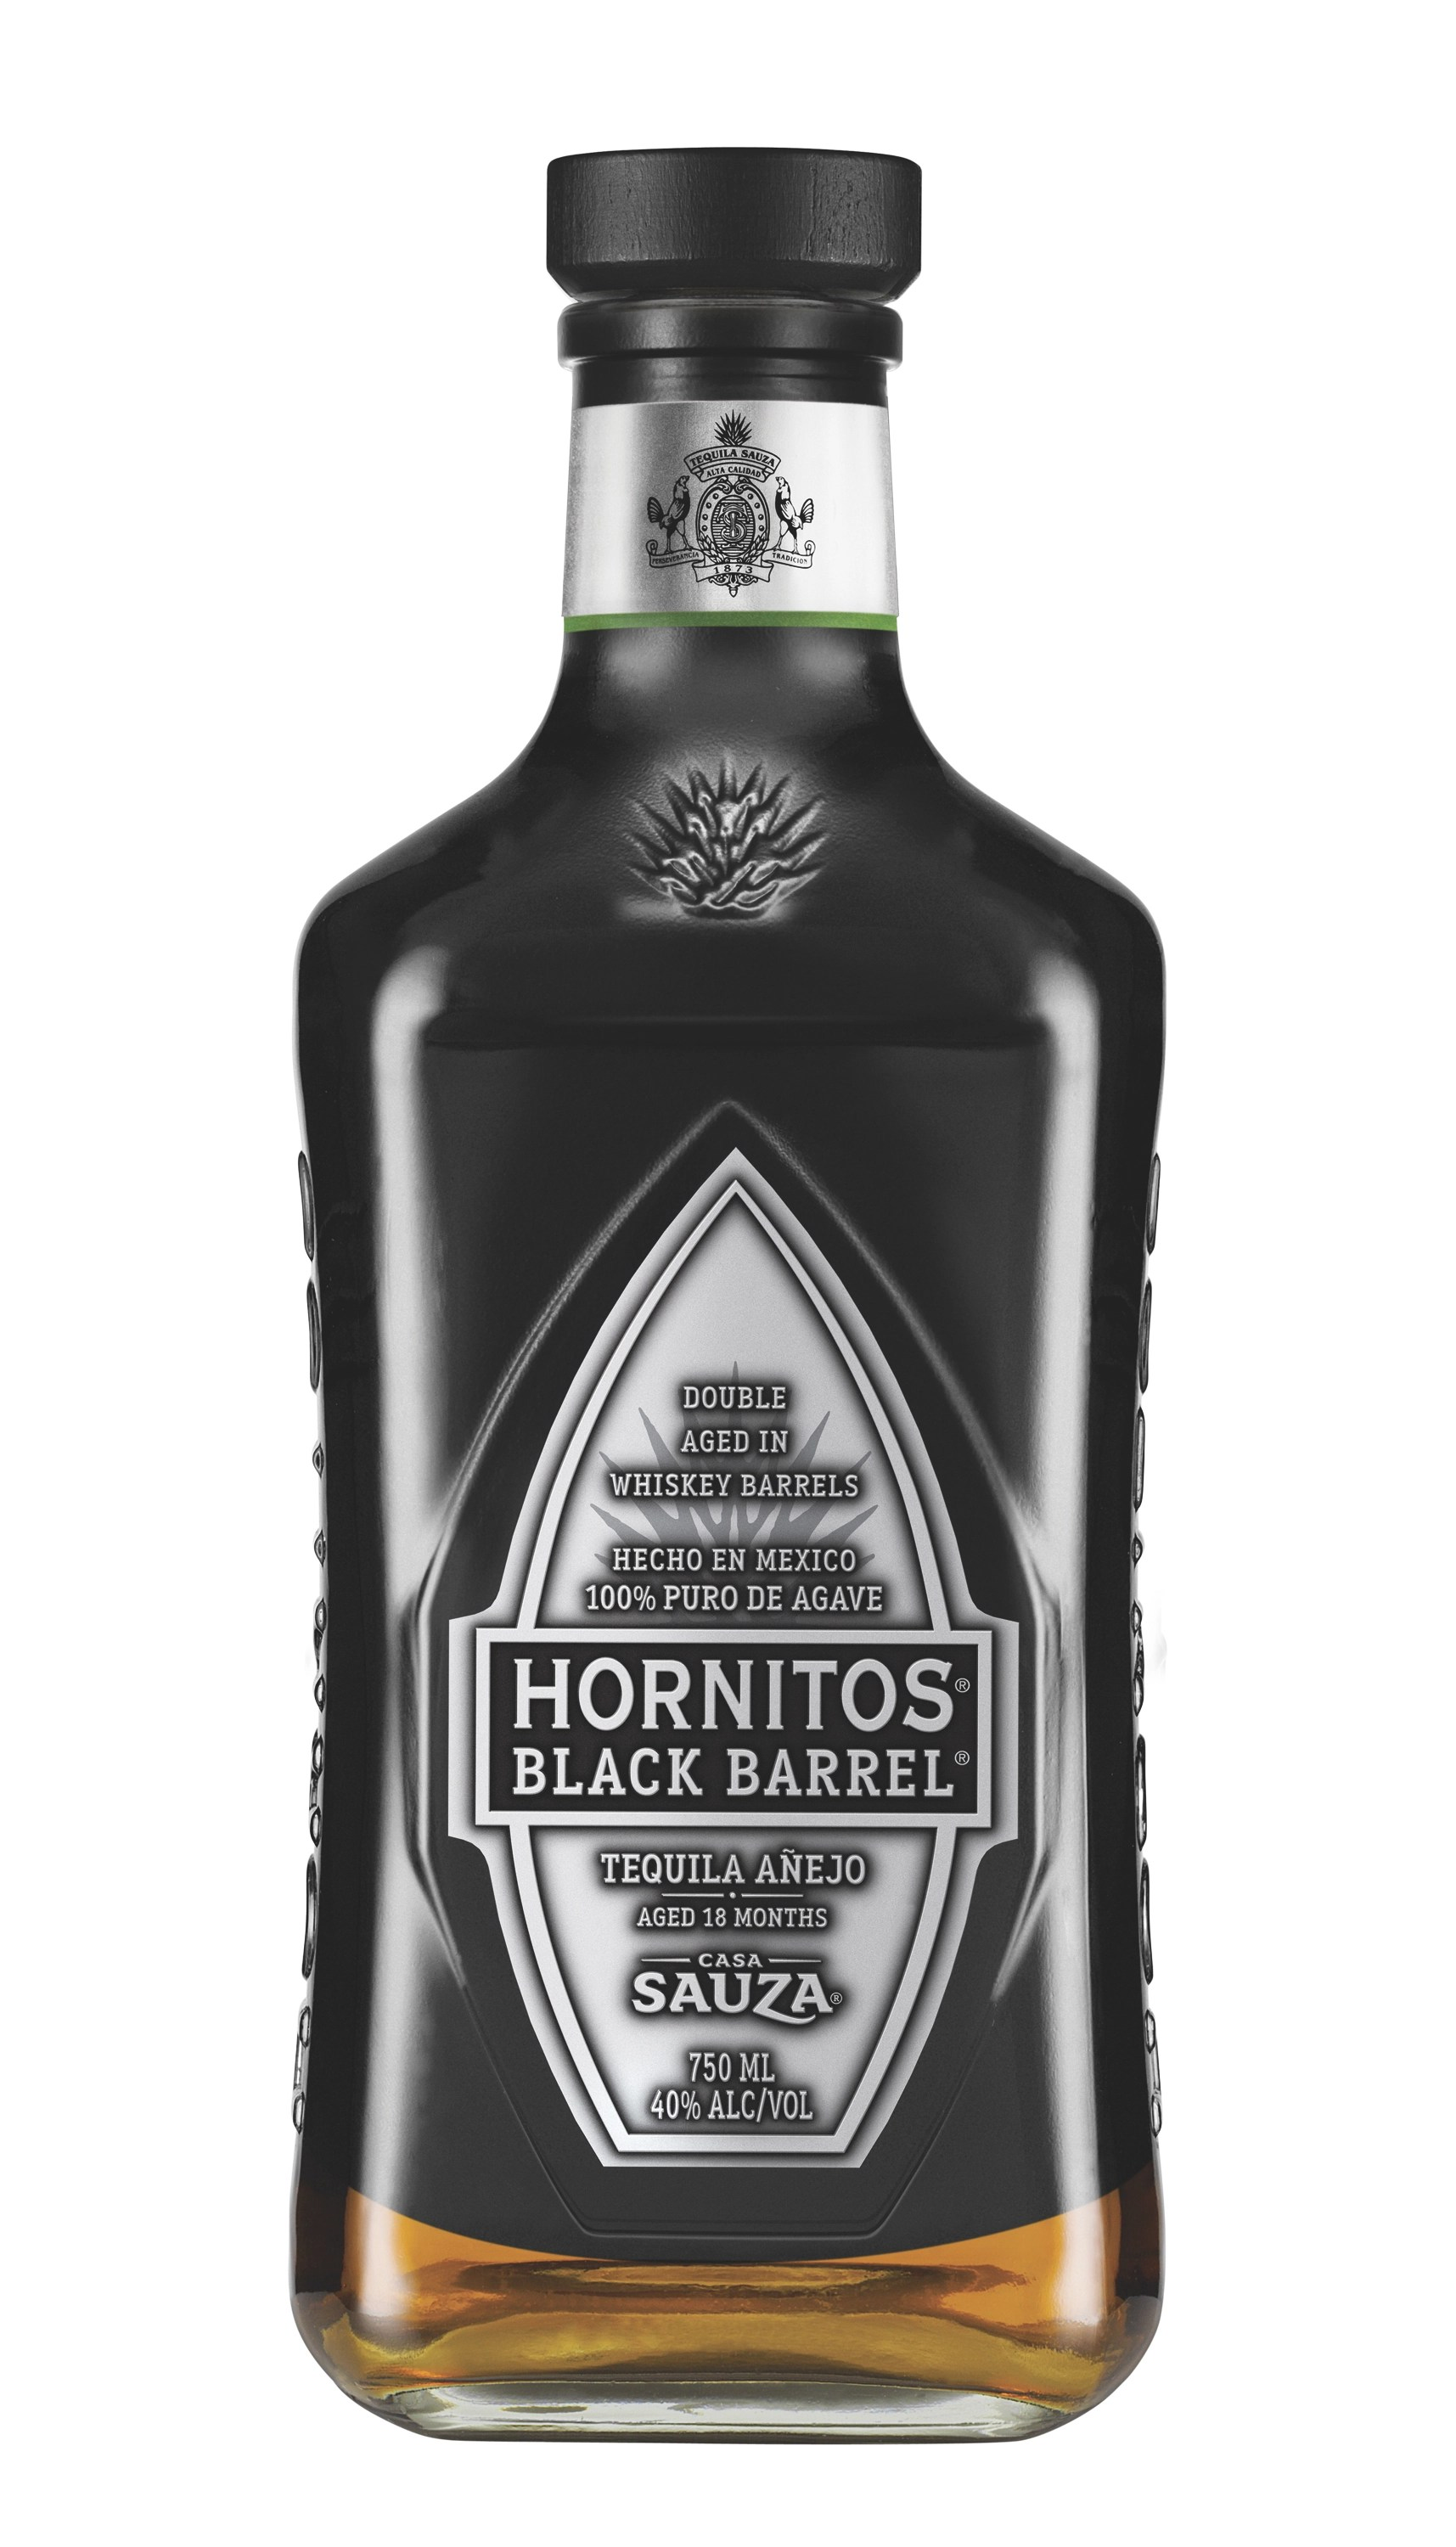 hornitos hindu singles 100% blue agave tequila aged for between 12 and 36 months in ex-bourbon casks superb in a margherita, but more than at home as a sipping tequila.